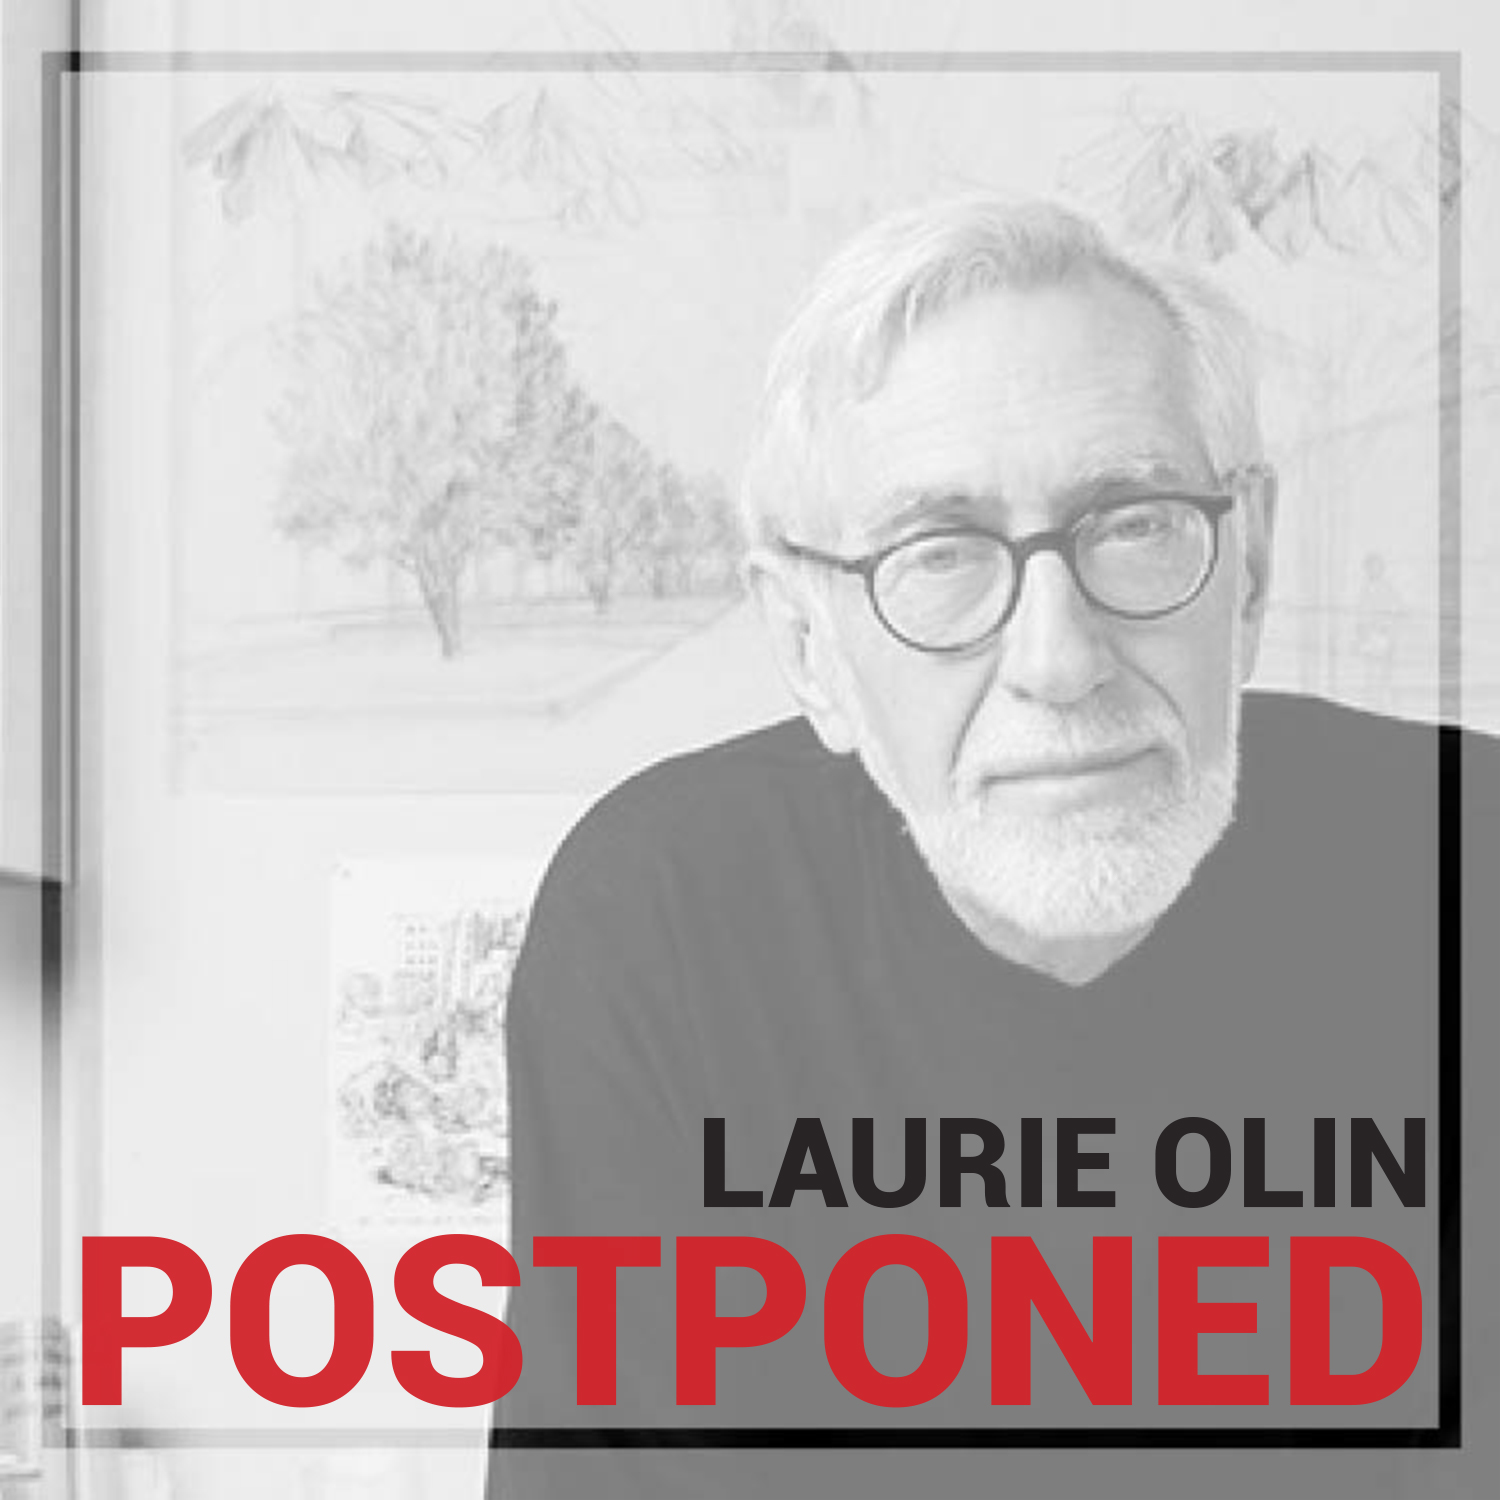 Laurie Olin